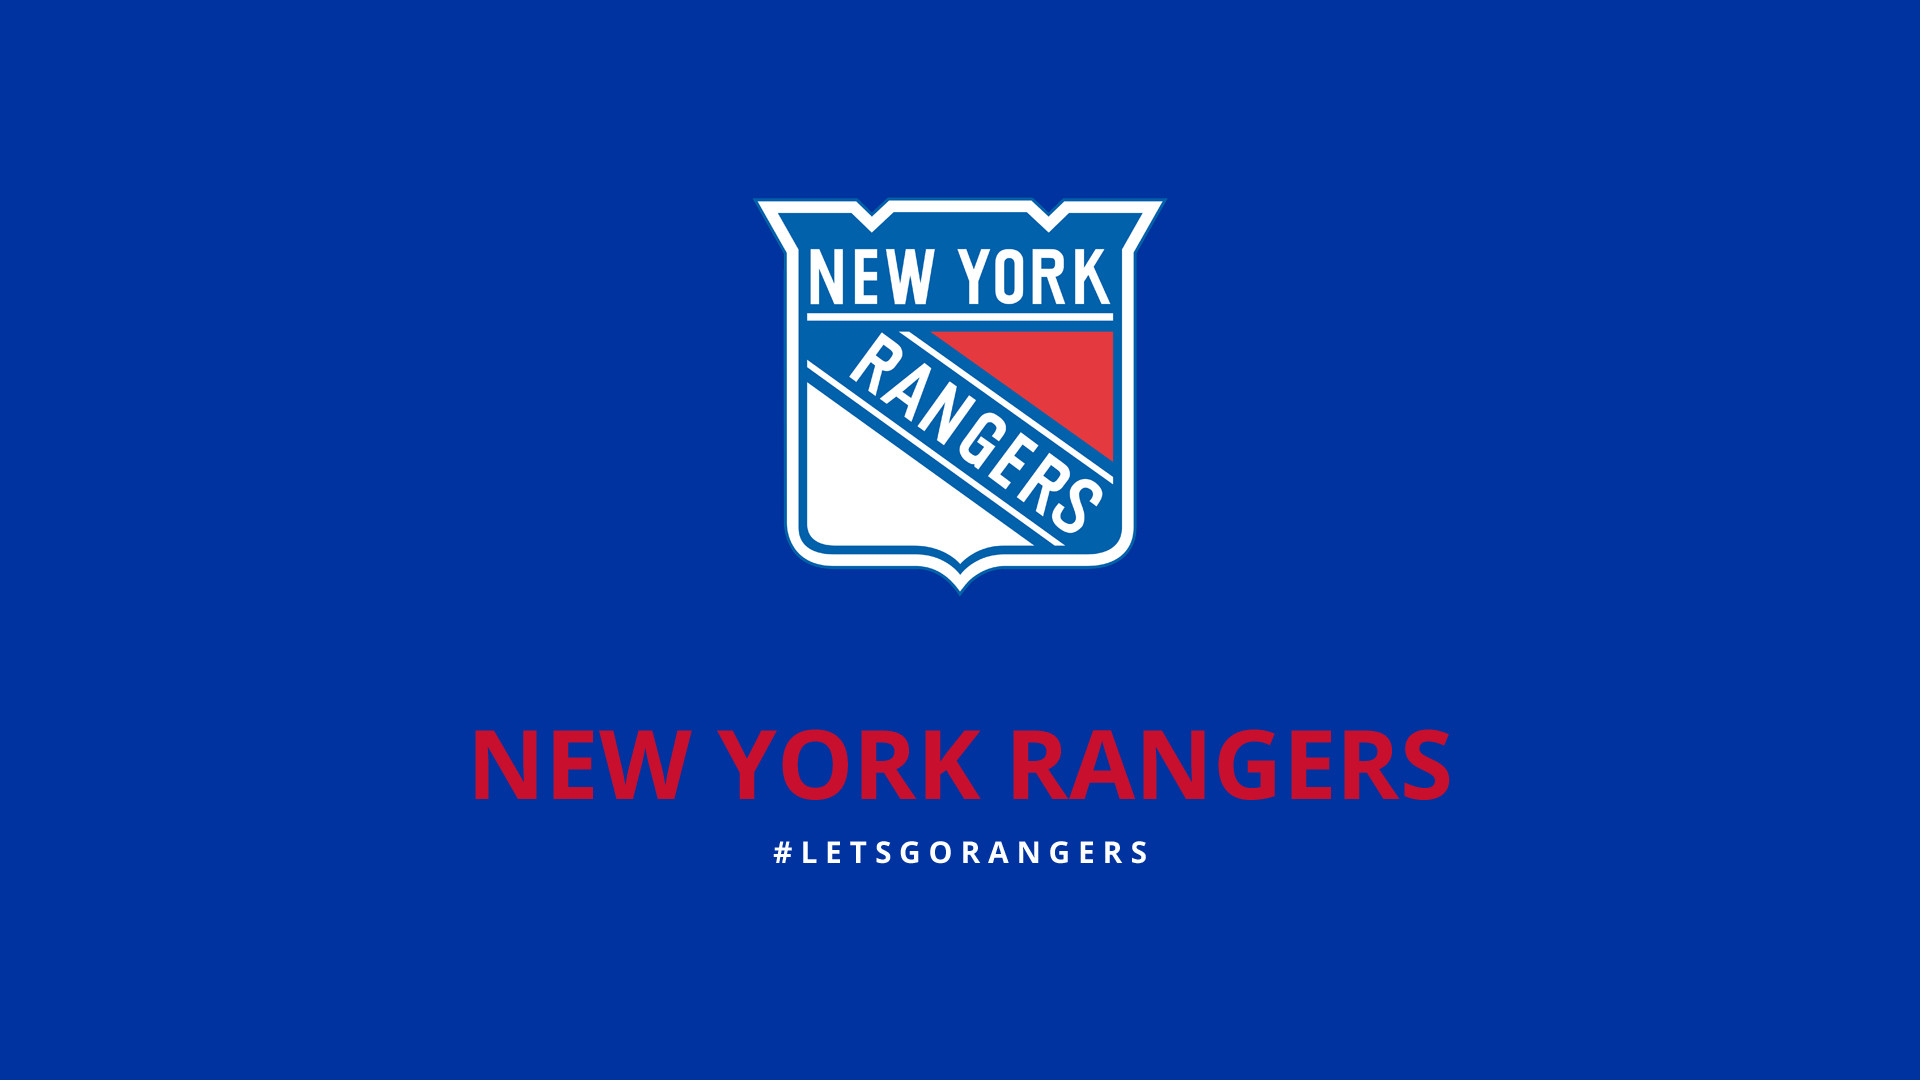 1920x1080 New York Rangers Wallpaper 47483